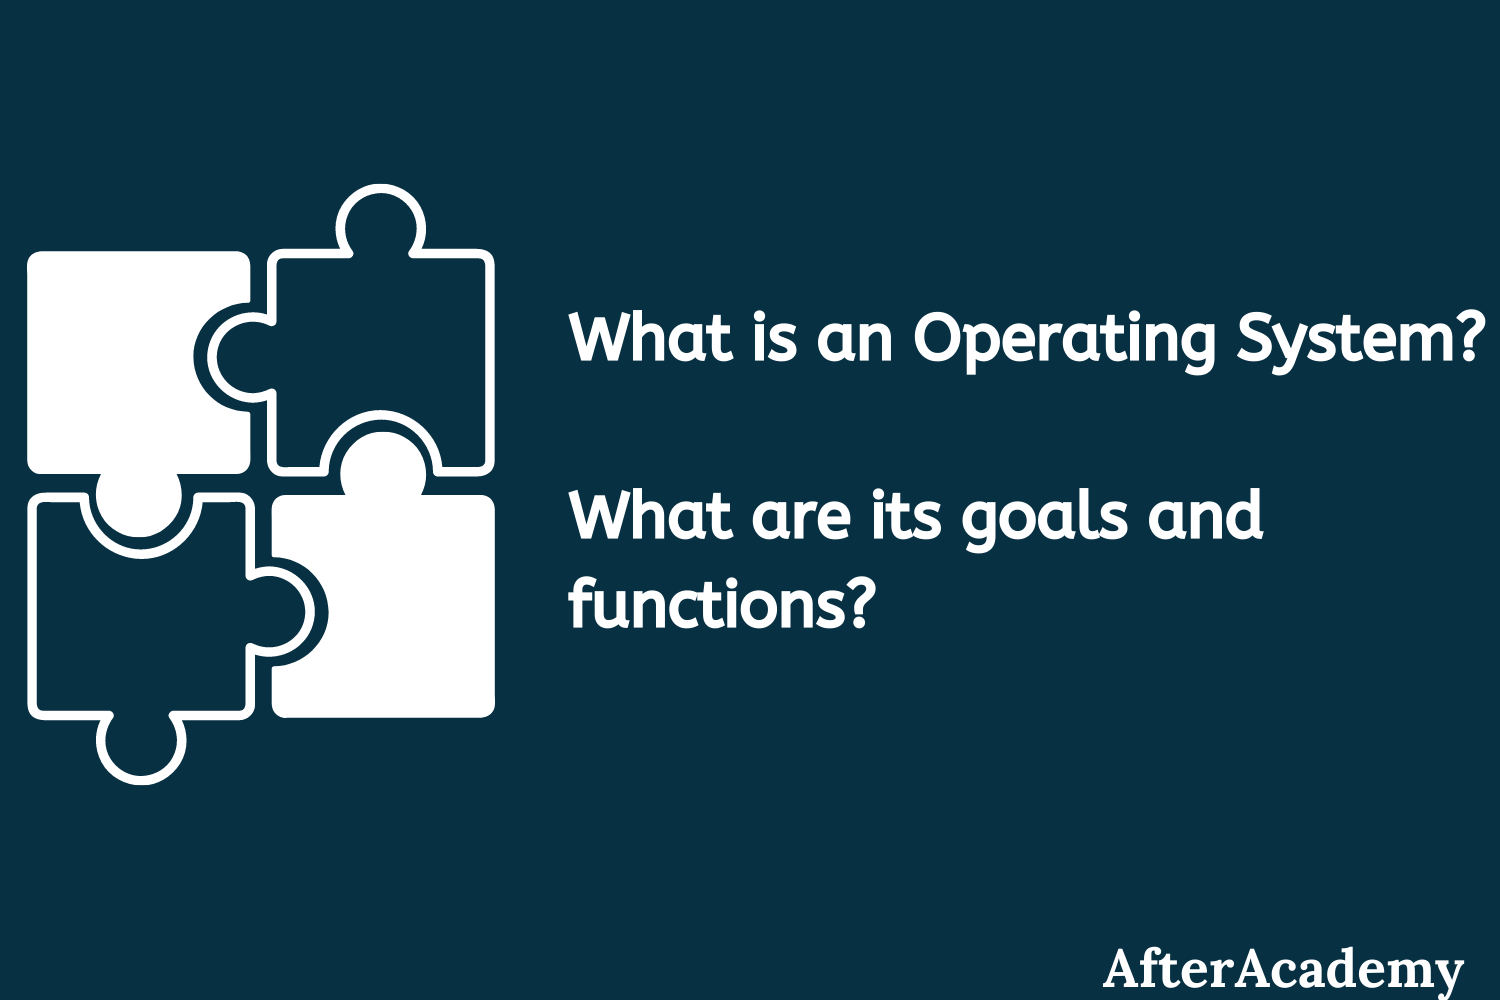 What is an Operating System and what are the goals and functions of an Operating System?